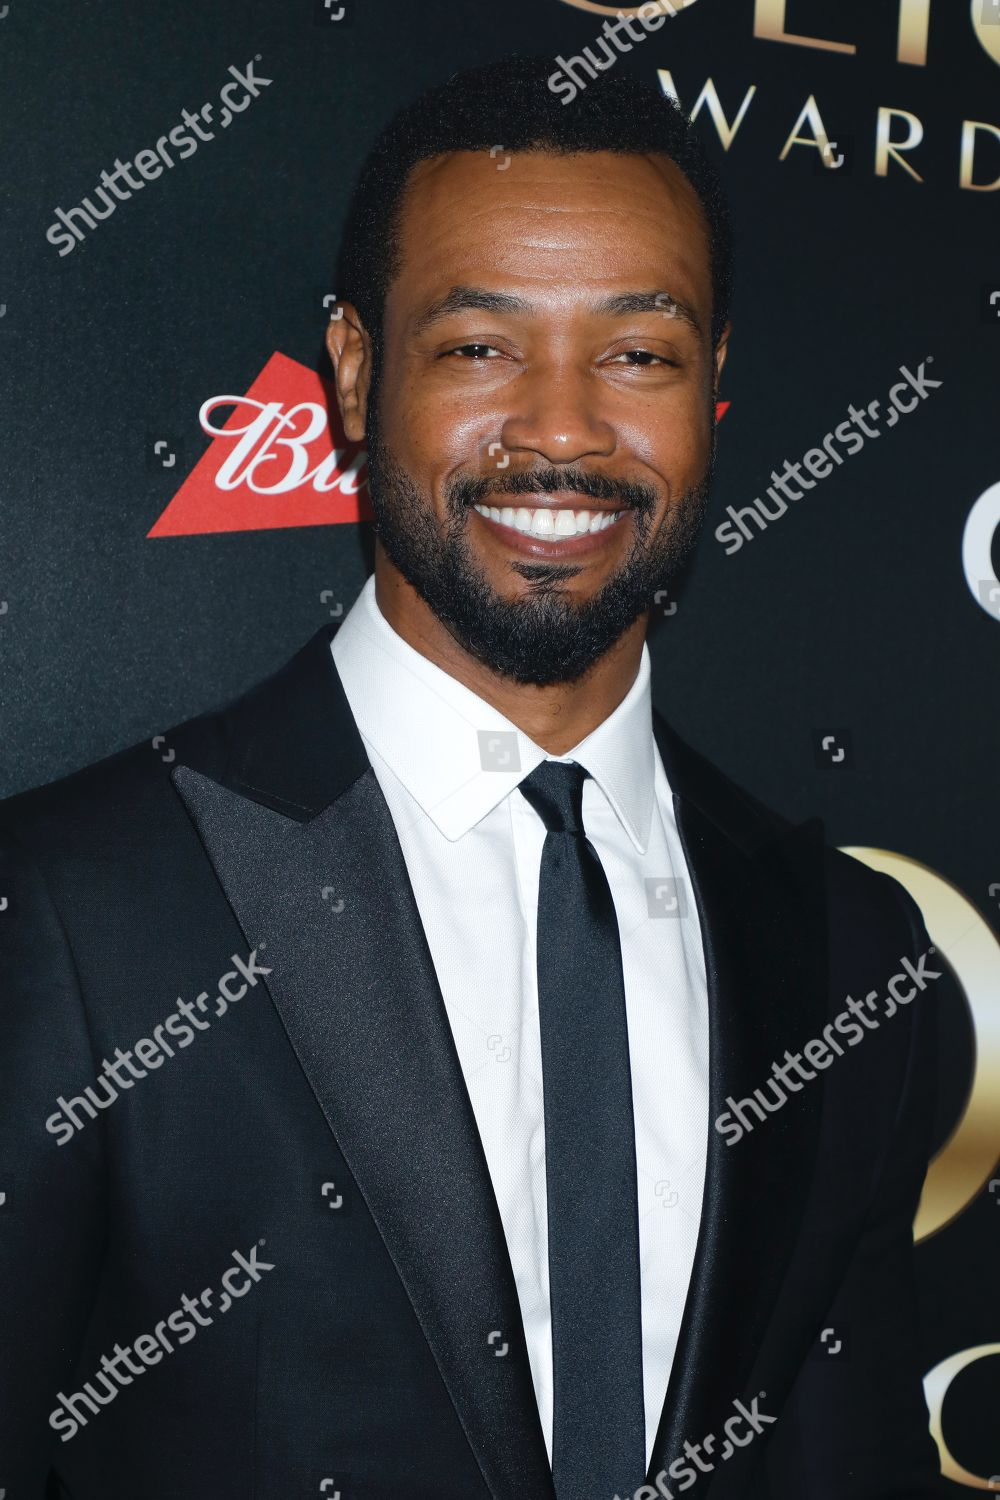 Stock photo of The 60th Annual Clio Awards, Arrivals, New York, USA - 25 Sep 2019